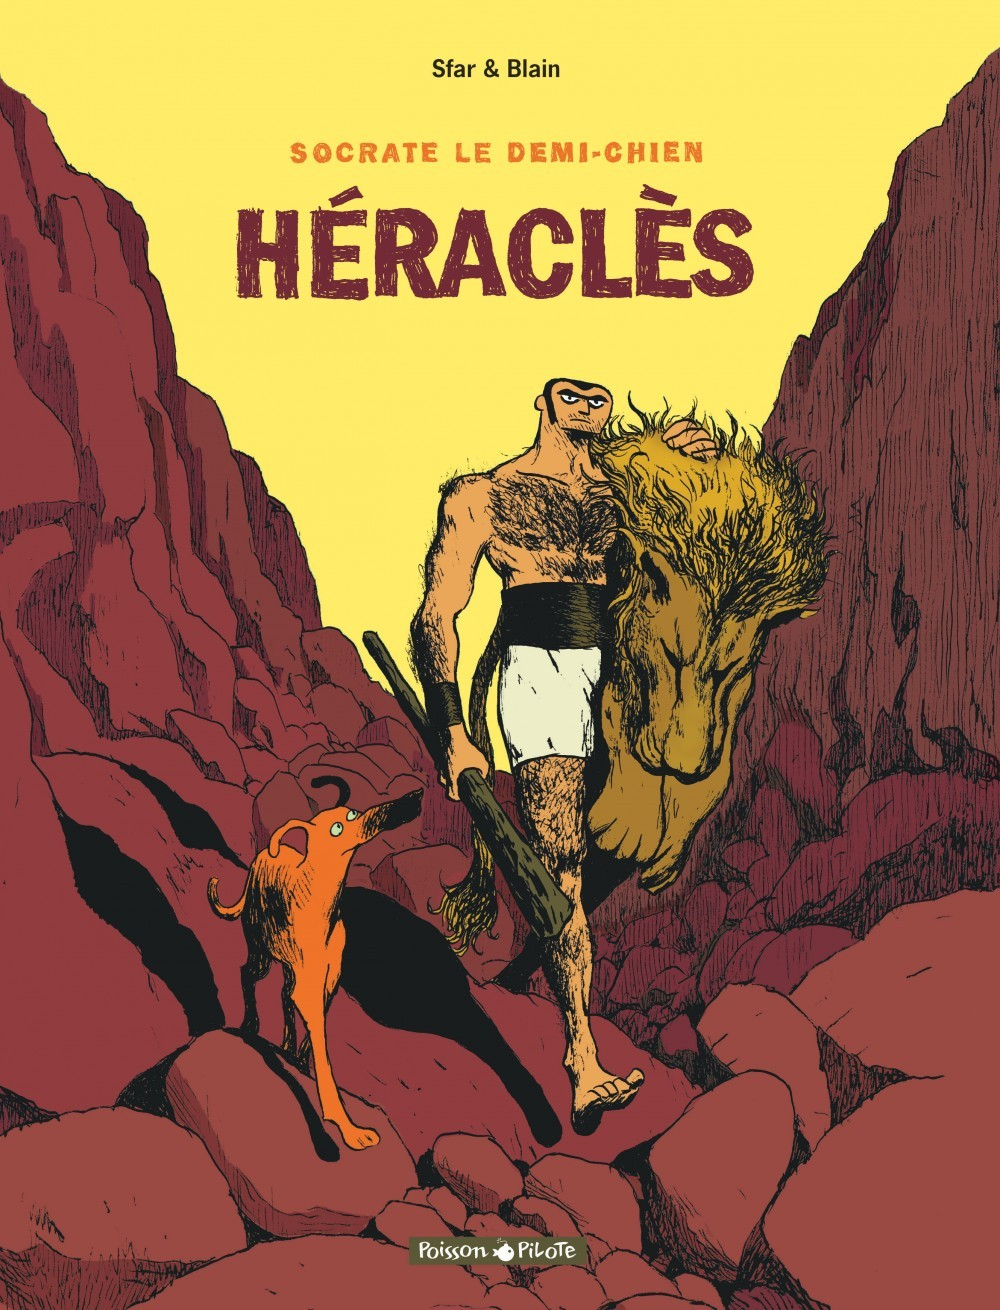 SOCRATE LE DEMI-CHIEN - T1 - HERACLES